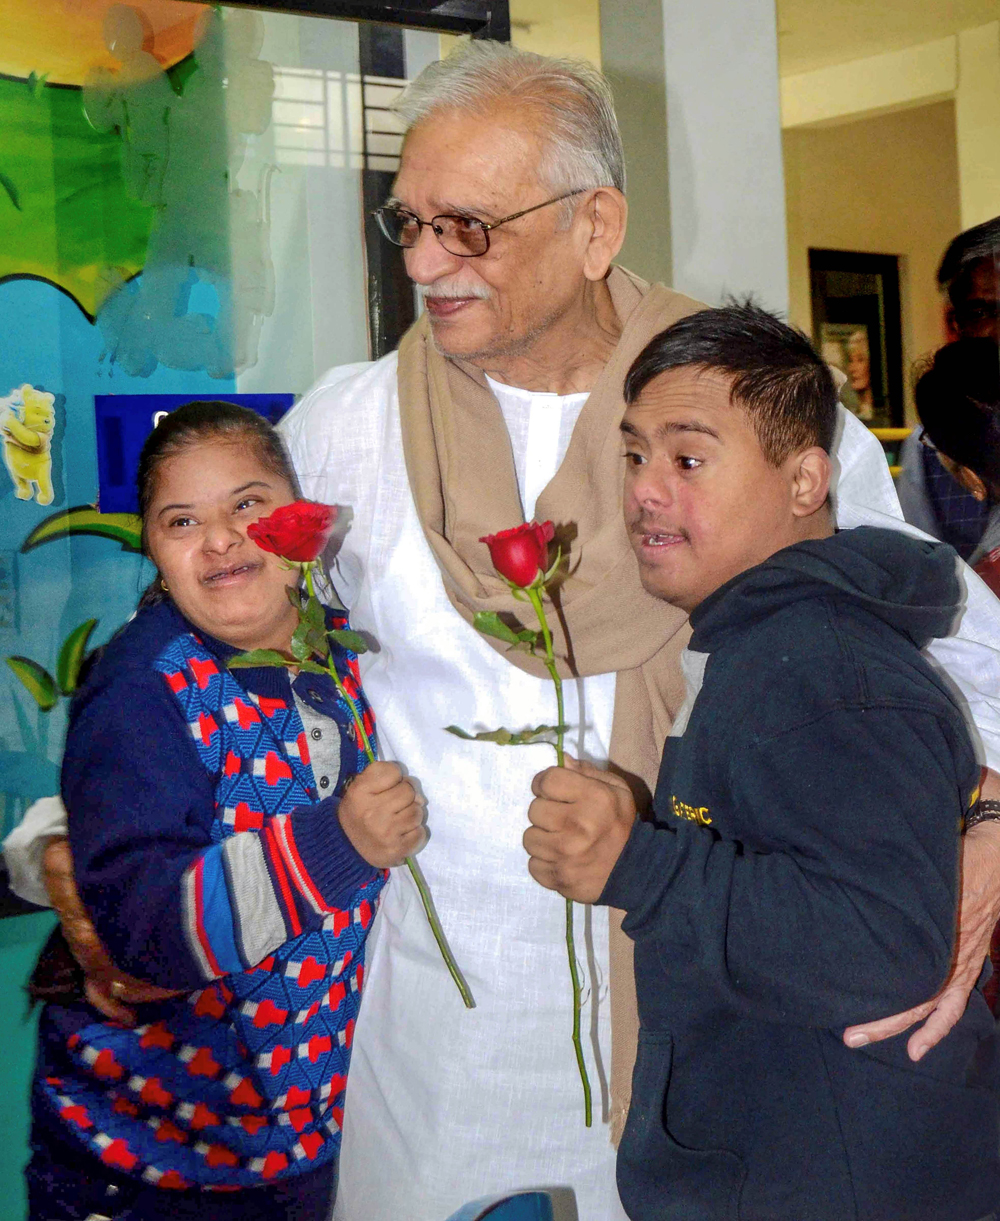 Lyricist Gulzar with specially abled children during his visit to Aarushi, a centre for caring, in Bhopal on December 21